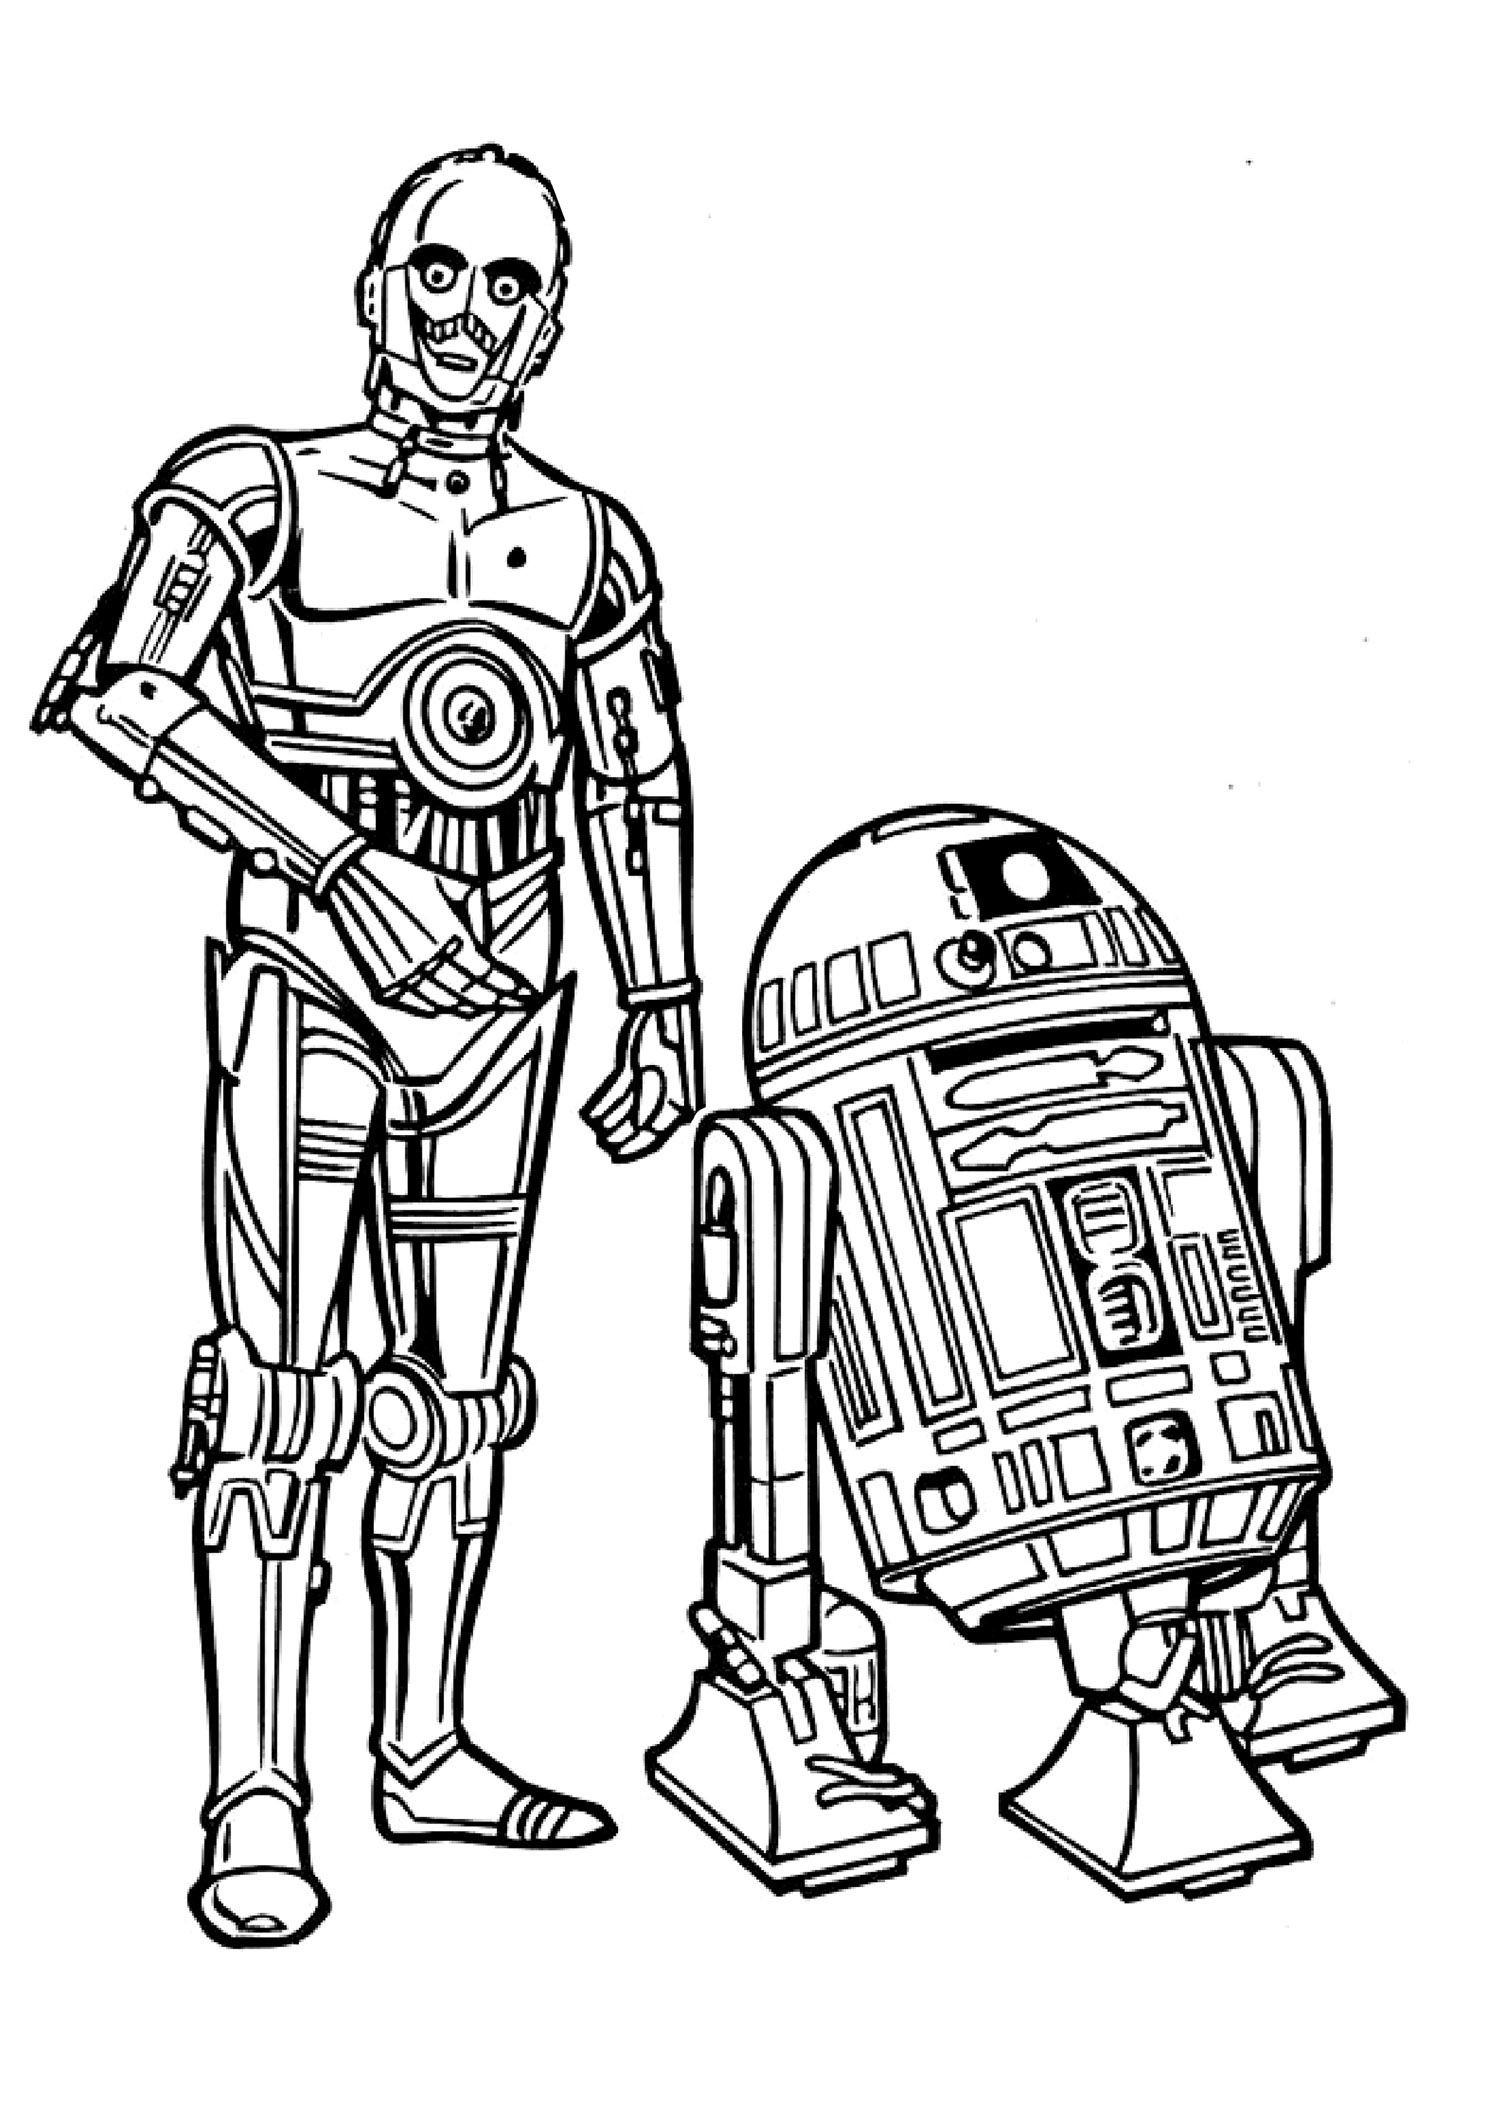 star wars coloring book meme star wars revenge of the sith coloring pages coloring home wars meme coloring book star